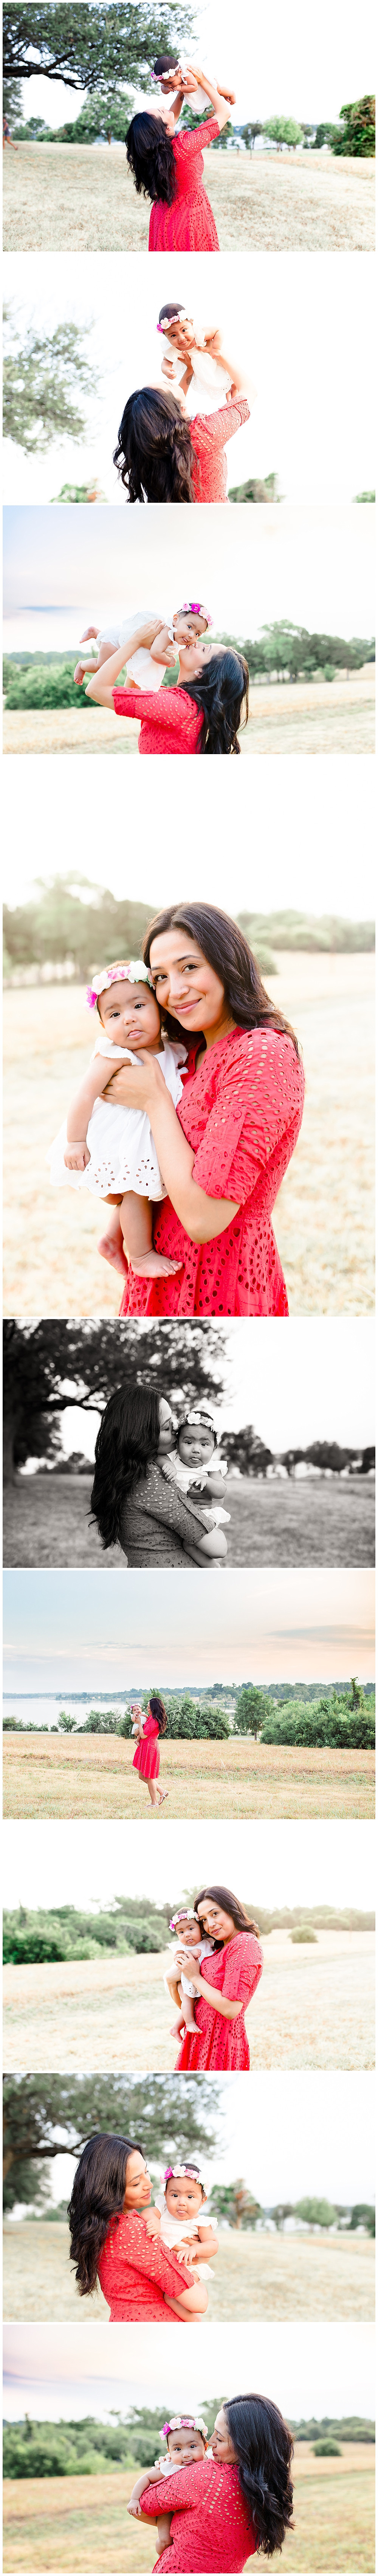 Dallas Family and Baby Photographer, Lexi Meadows Photography